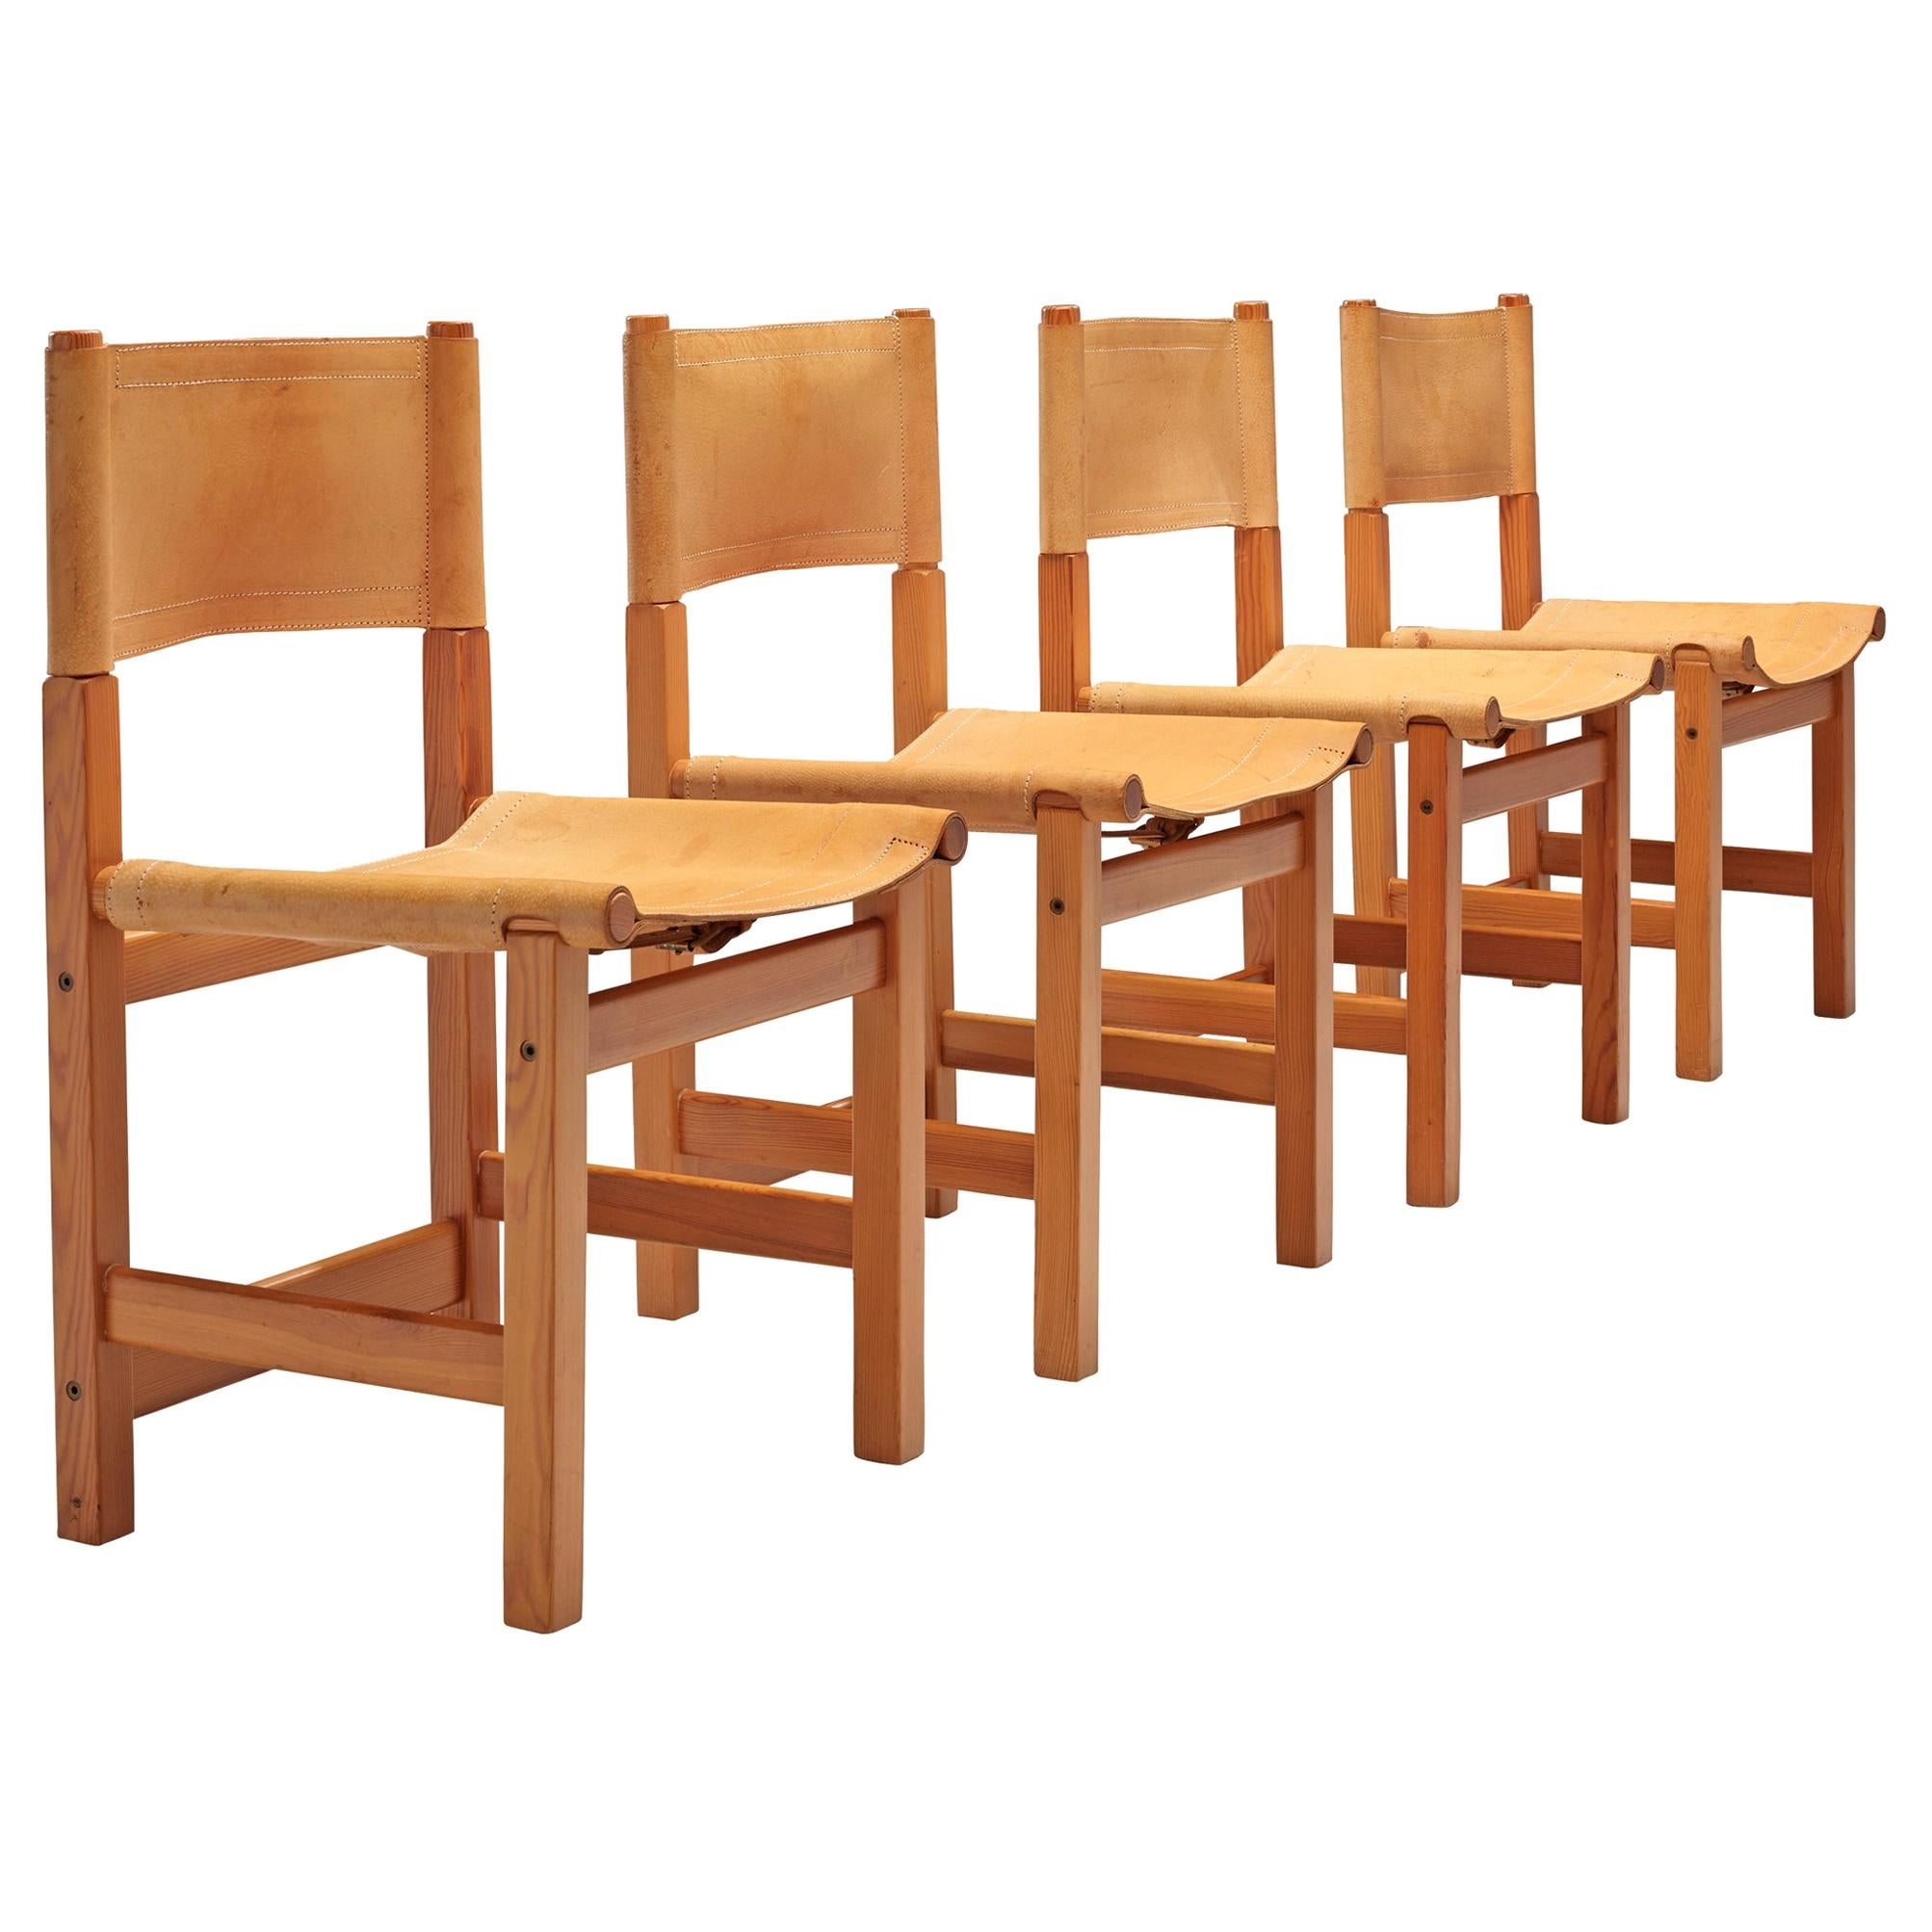 Swedish Set of Four Chairs in Pine and Naturel Leather